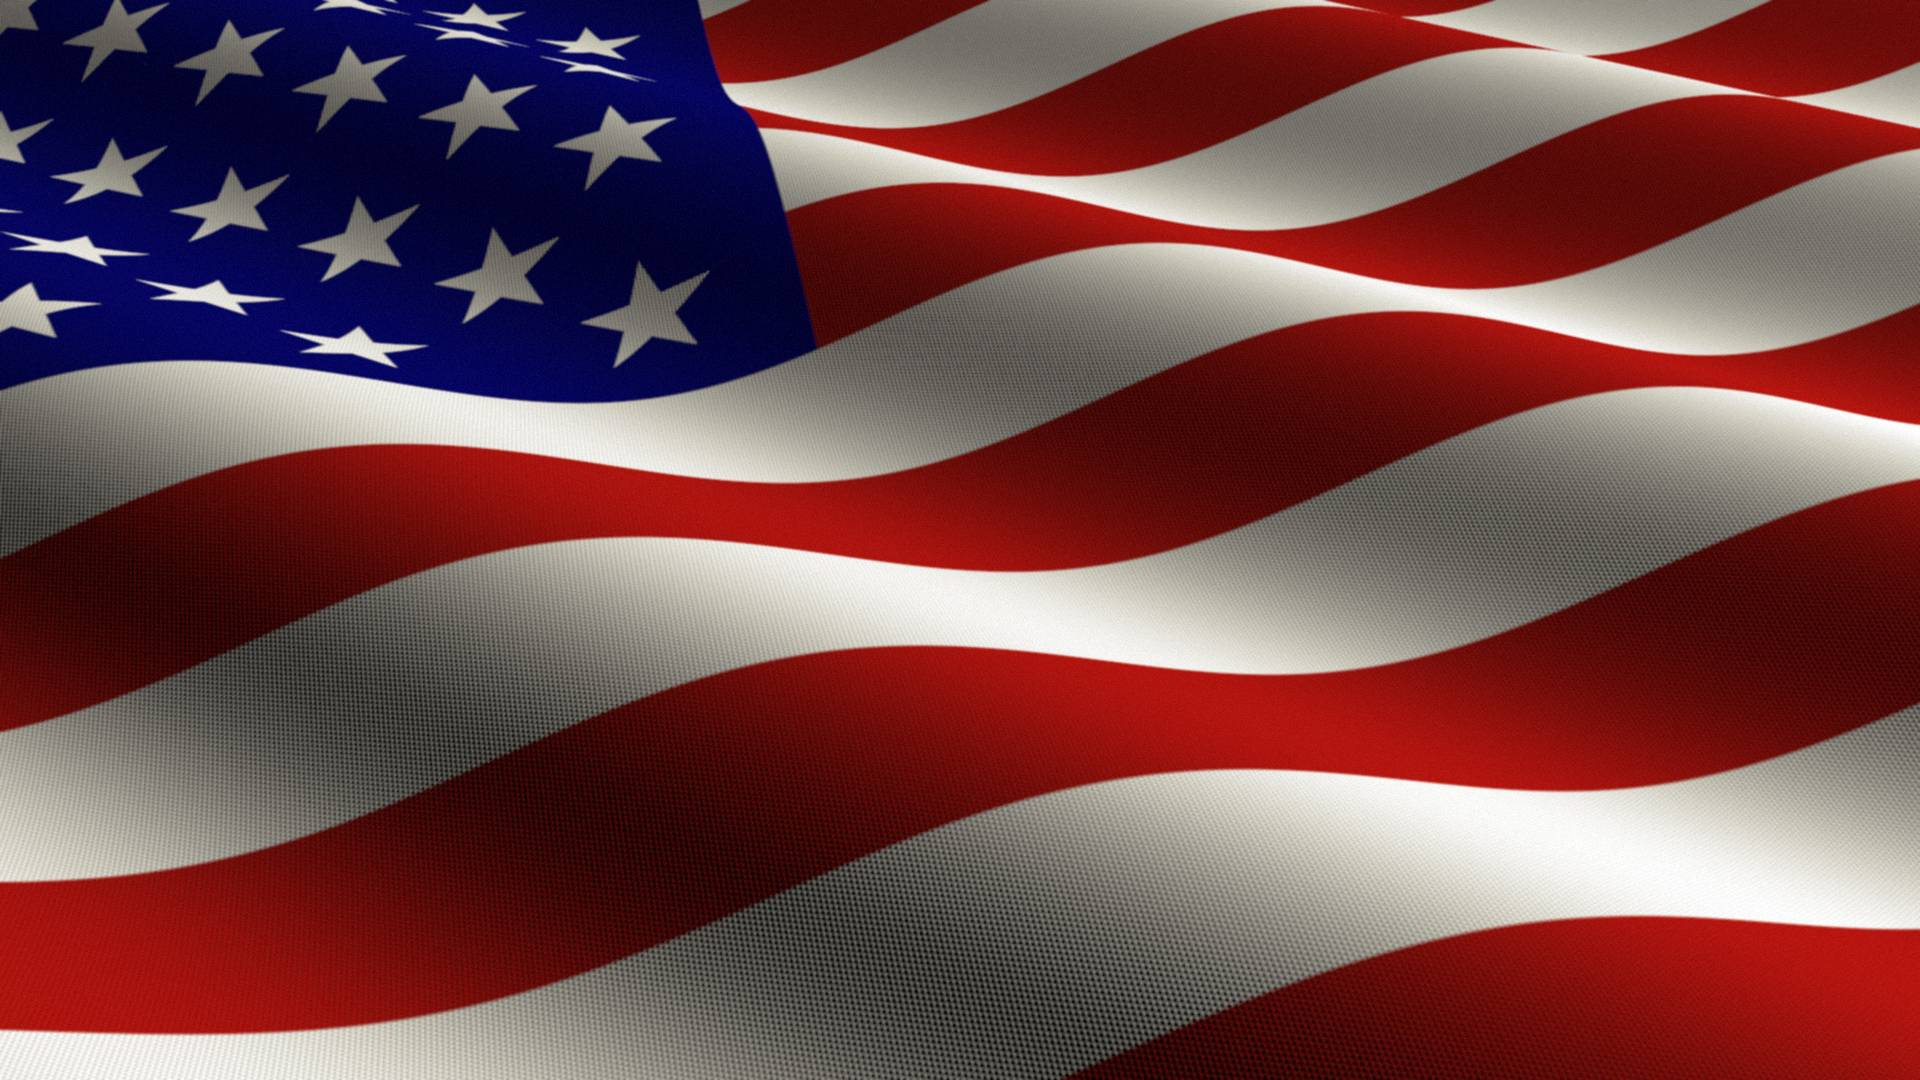 american flag desktop wallpapers wallpaper cave fourth of july clipart animated fourth of july clipart animated